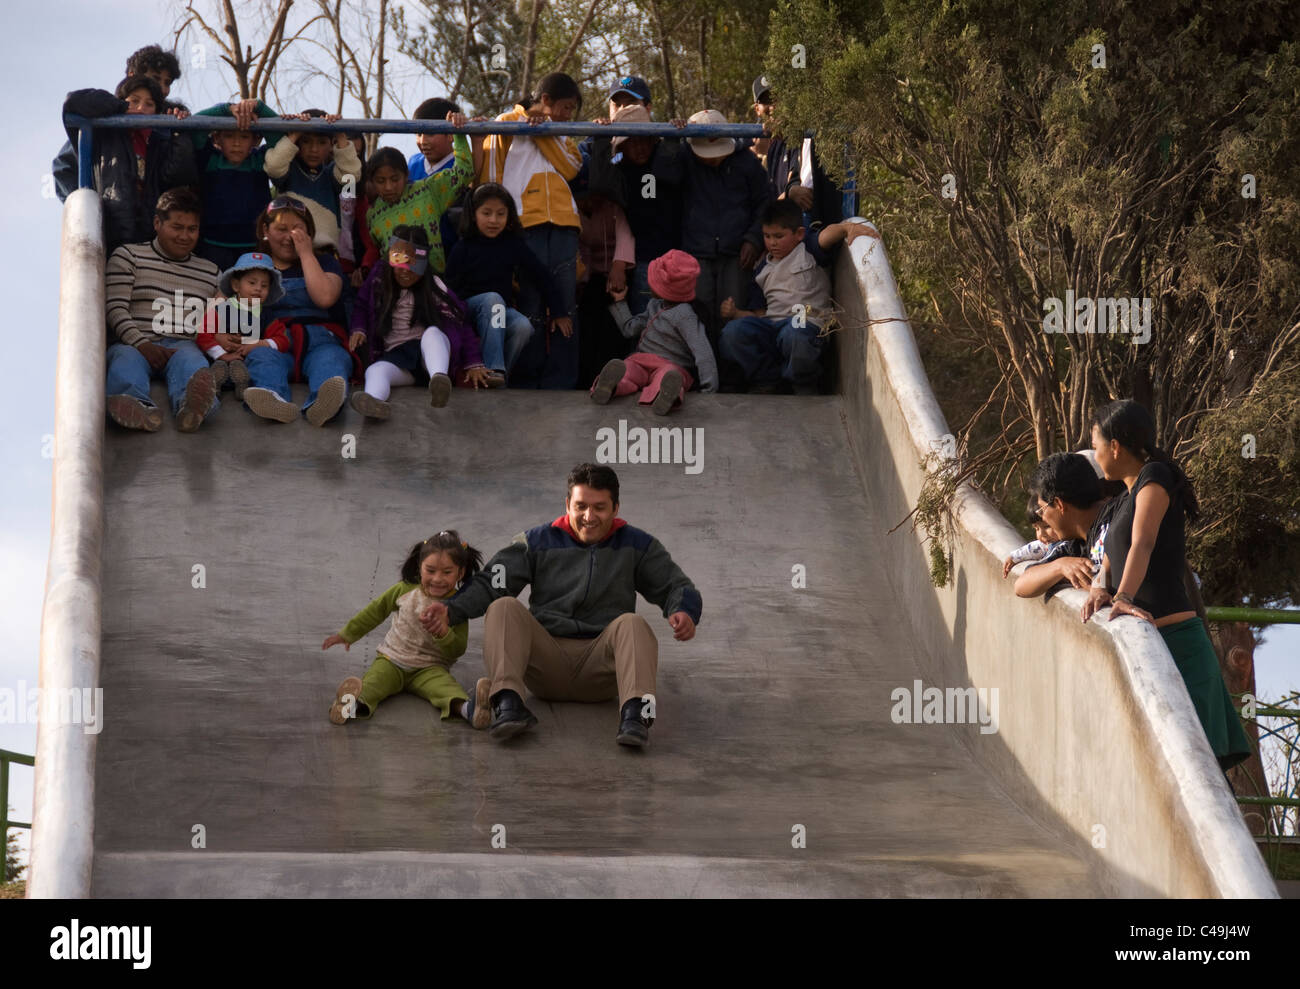 La Paz, Miraflores, children's playground, man and young girl on giant slide. - Stock Image